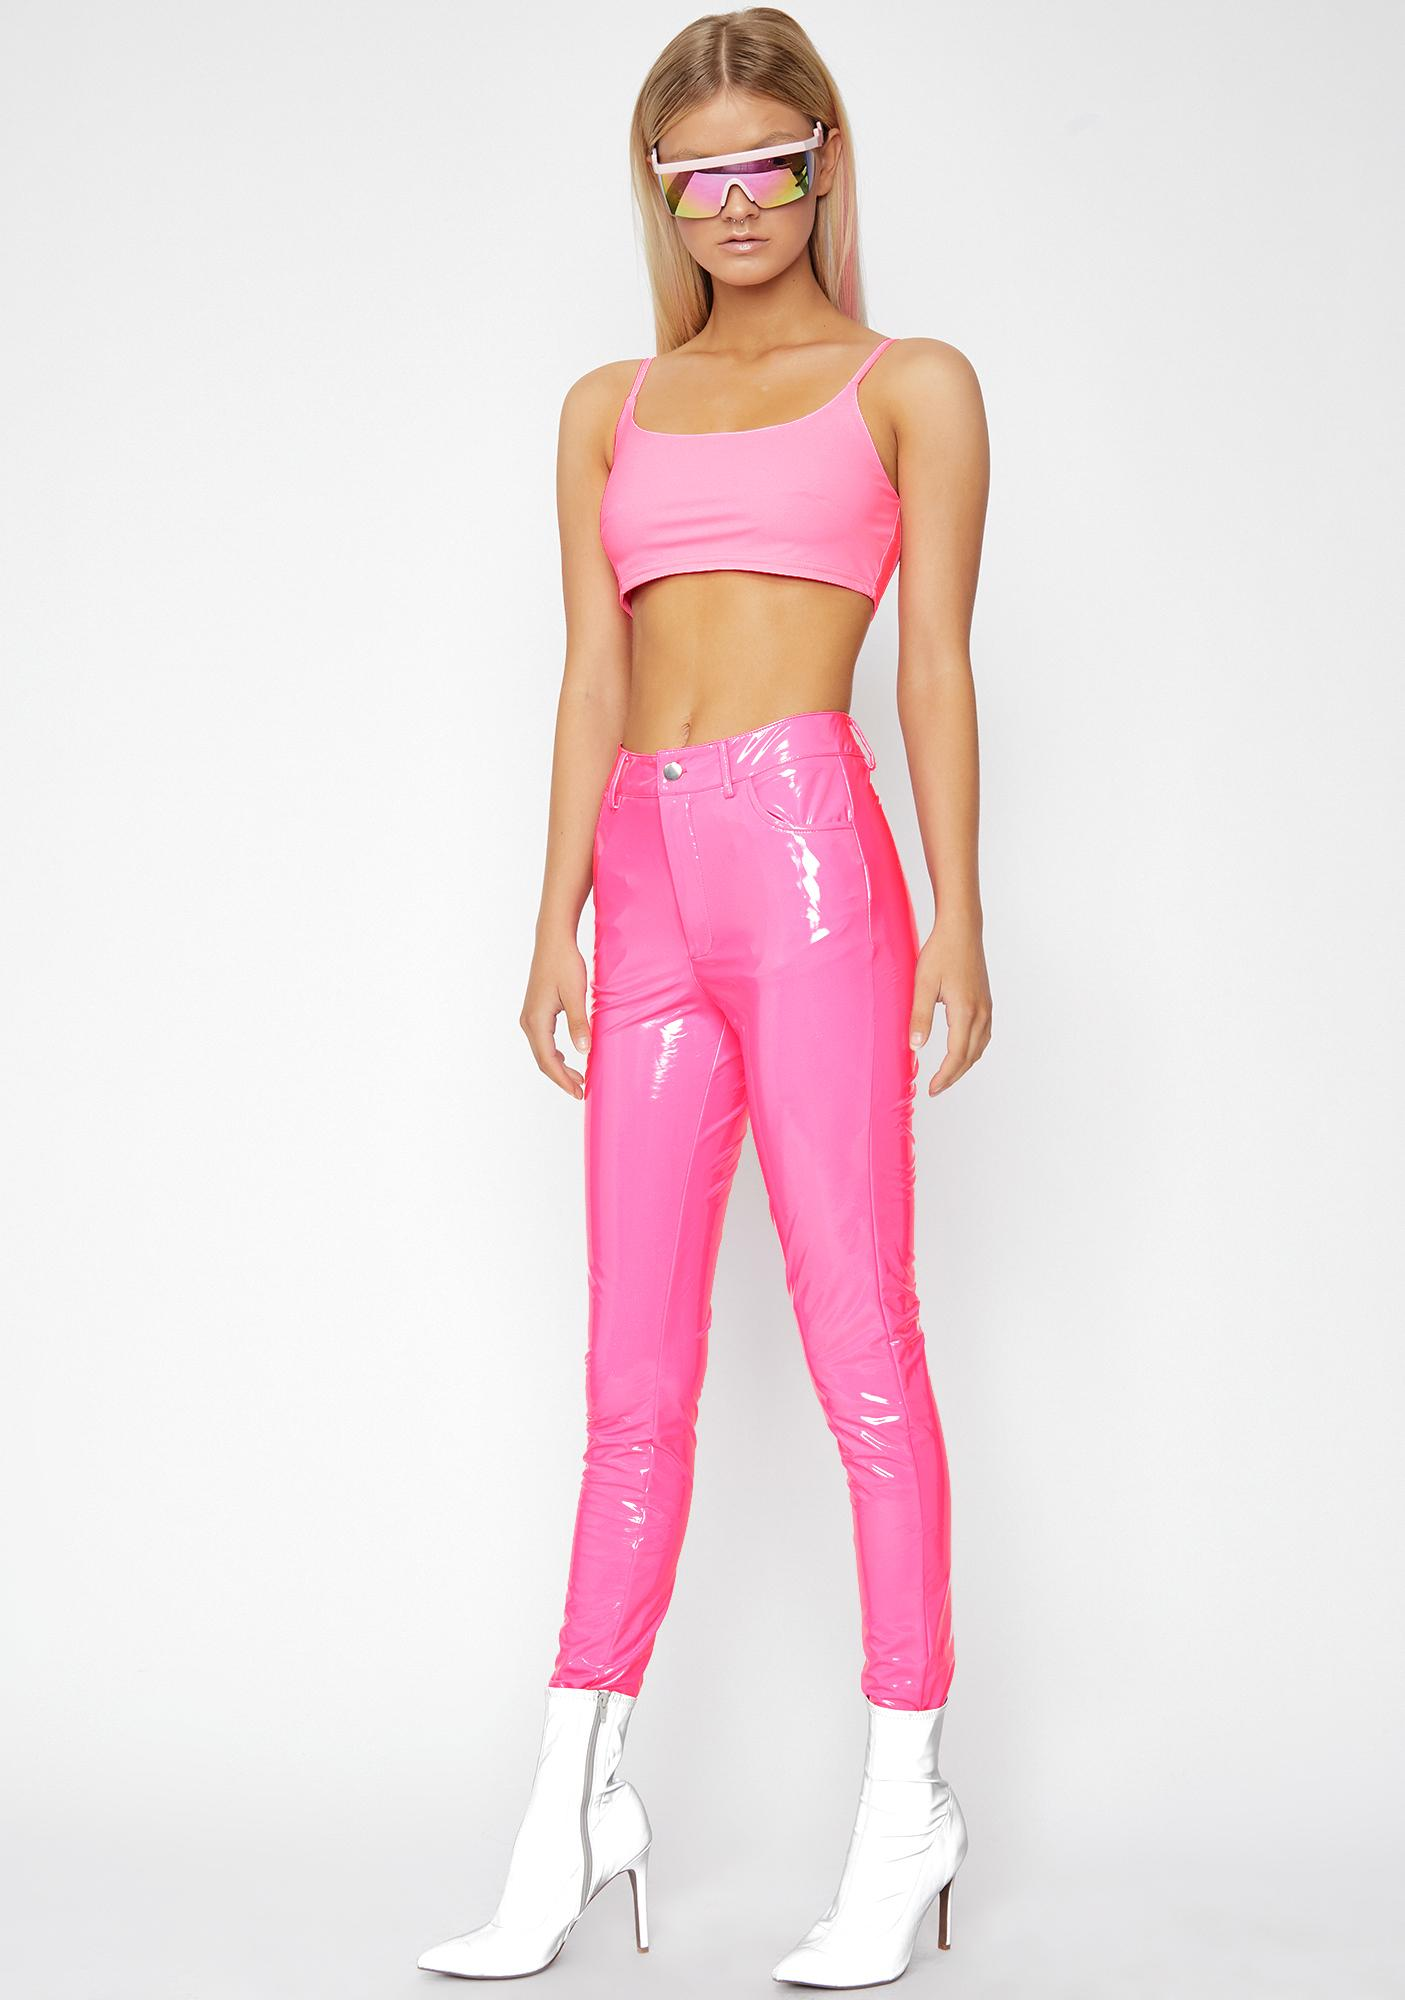 Candy Legally Flawless Vinyl Pants